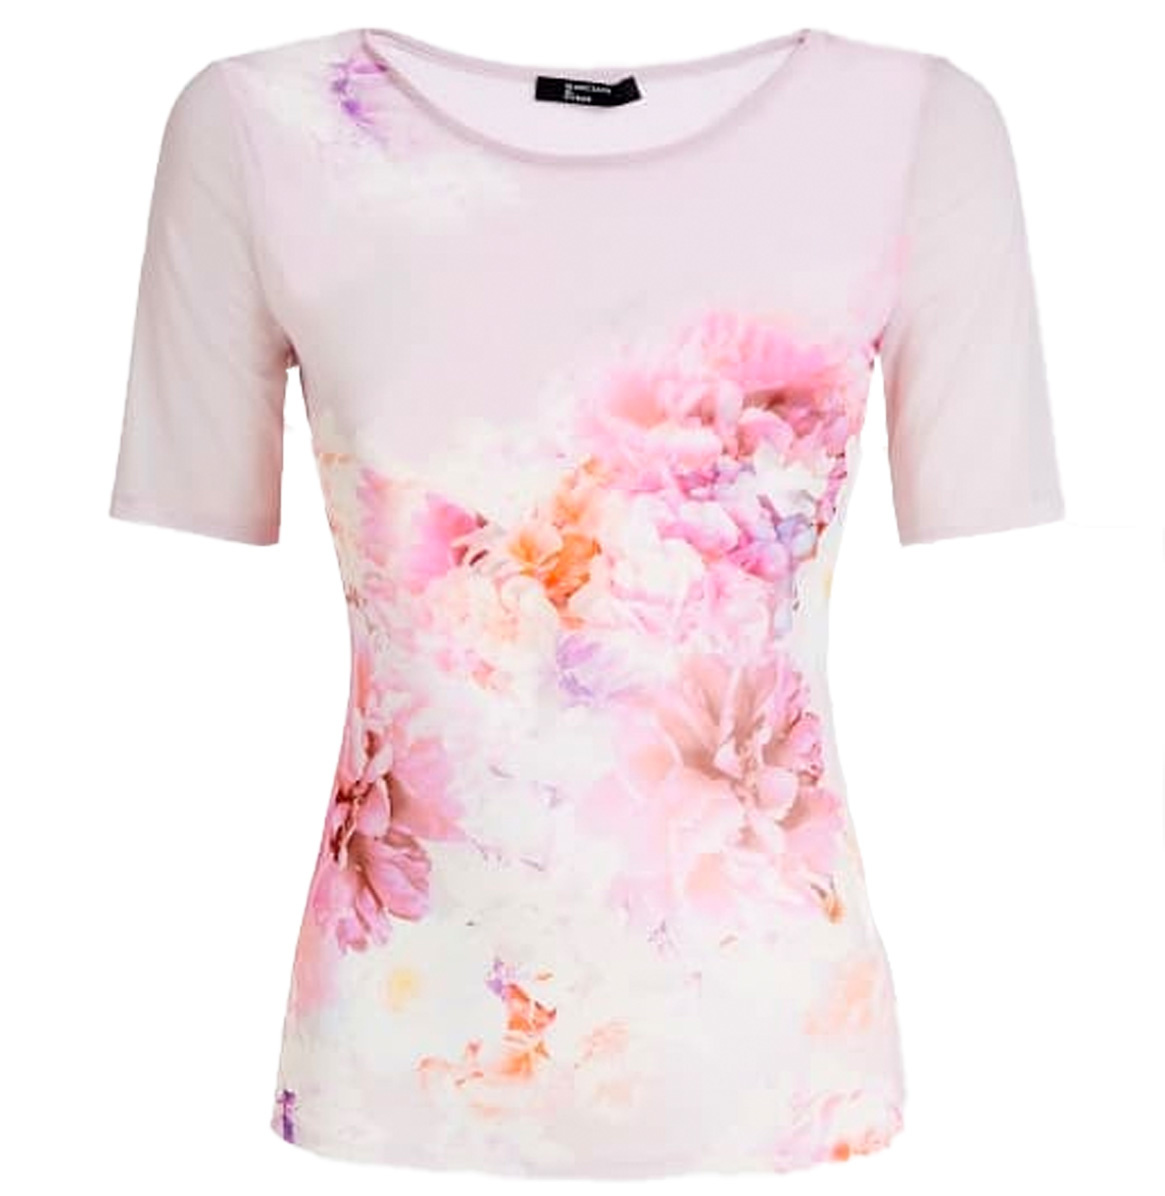 Guess by Marciano Top Flowers Guess by Marciano